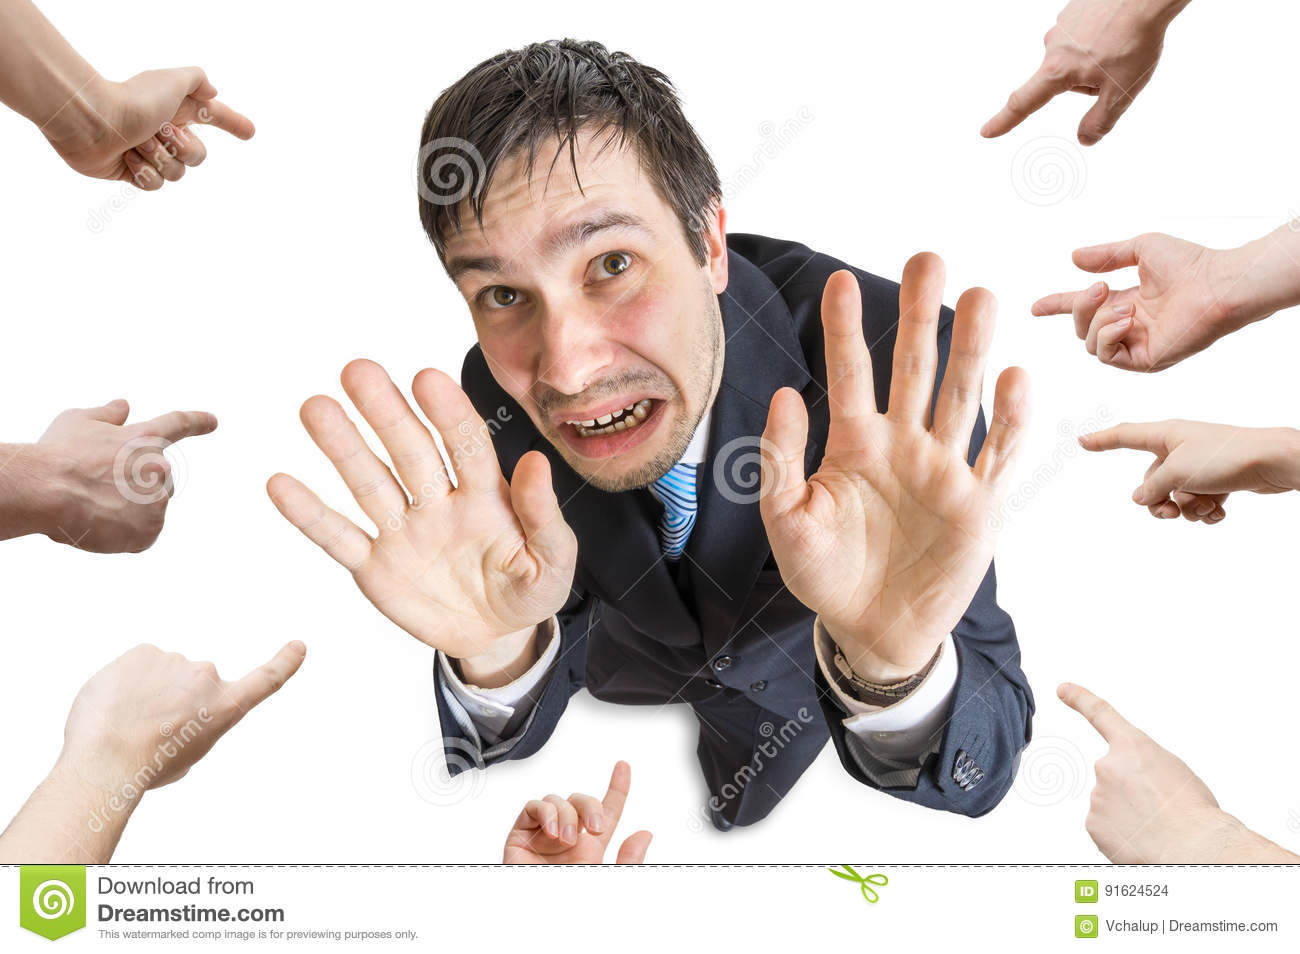 Many hands are pointing and blame stressed man. Isolated on white background. View from top